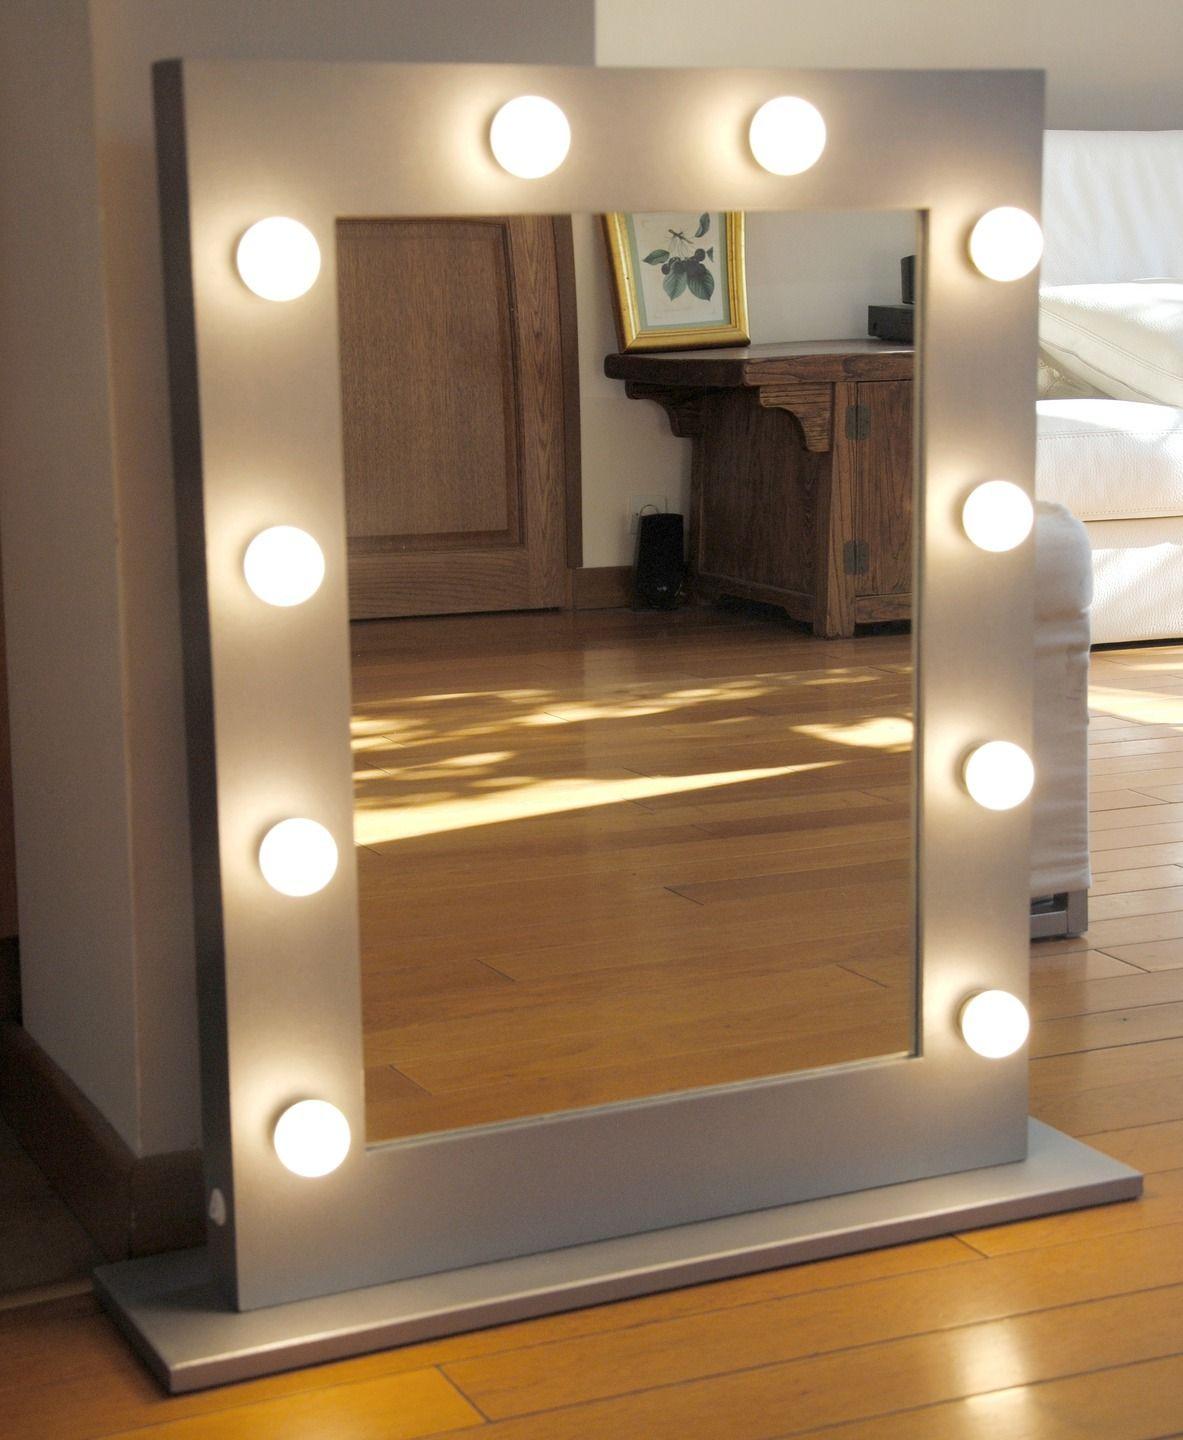 miroir de maquillage lumineux blanc clairage int gr professionnel luminaires par mycraftshop. Black Bedroom Furniture Sets. Home Design Ideas